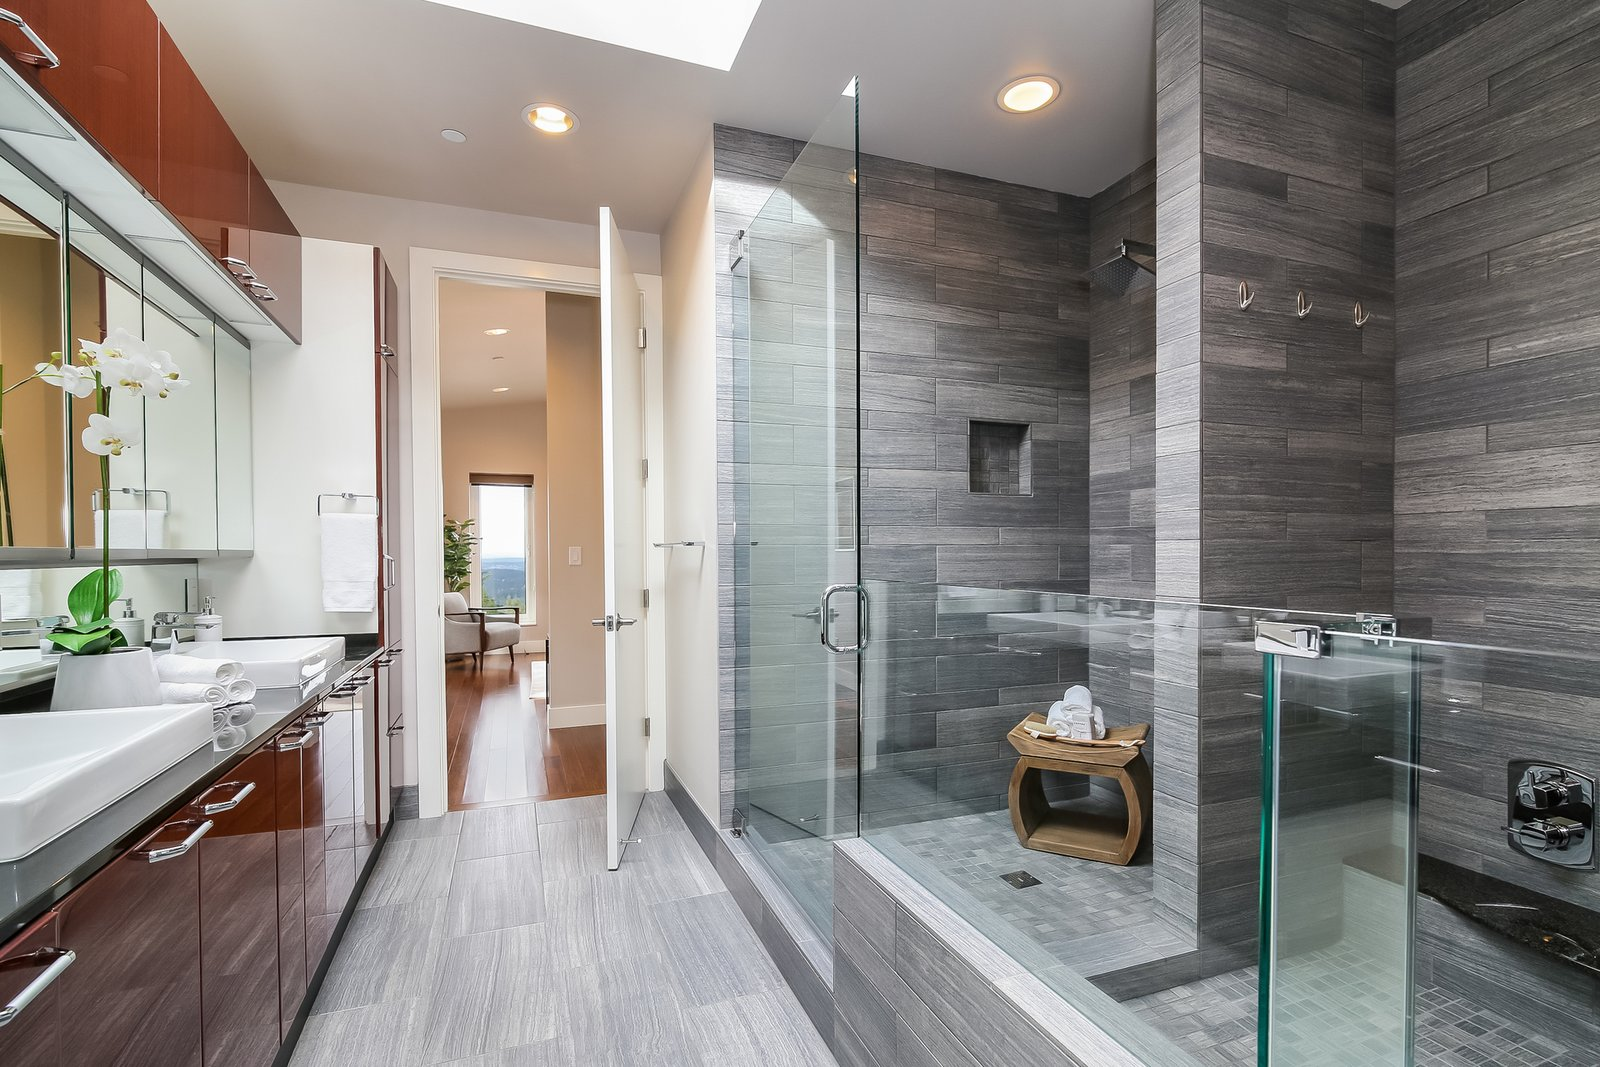 Bath Room, One Piece Toilet, Open Shower, Quartzite Counter, Cement Tile Floor, Stone Tile Wall, Vessel Sink, Full Shower, and Ceiling Lighting  Japanese Builder Ichijo Creates Net-Zero Energy Home by PlanOmatic